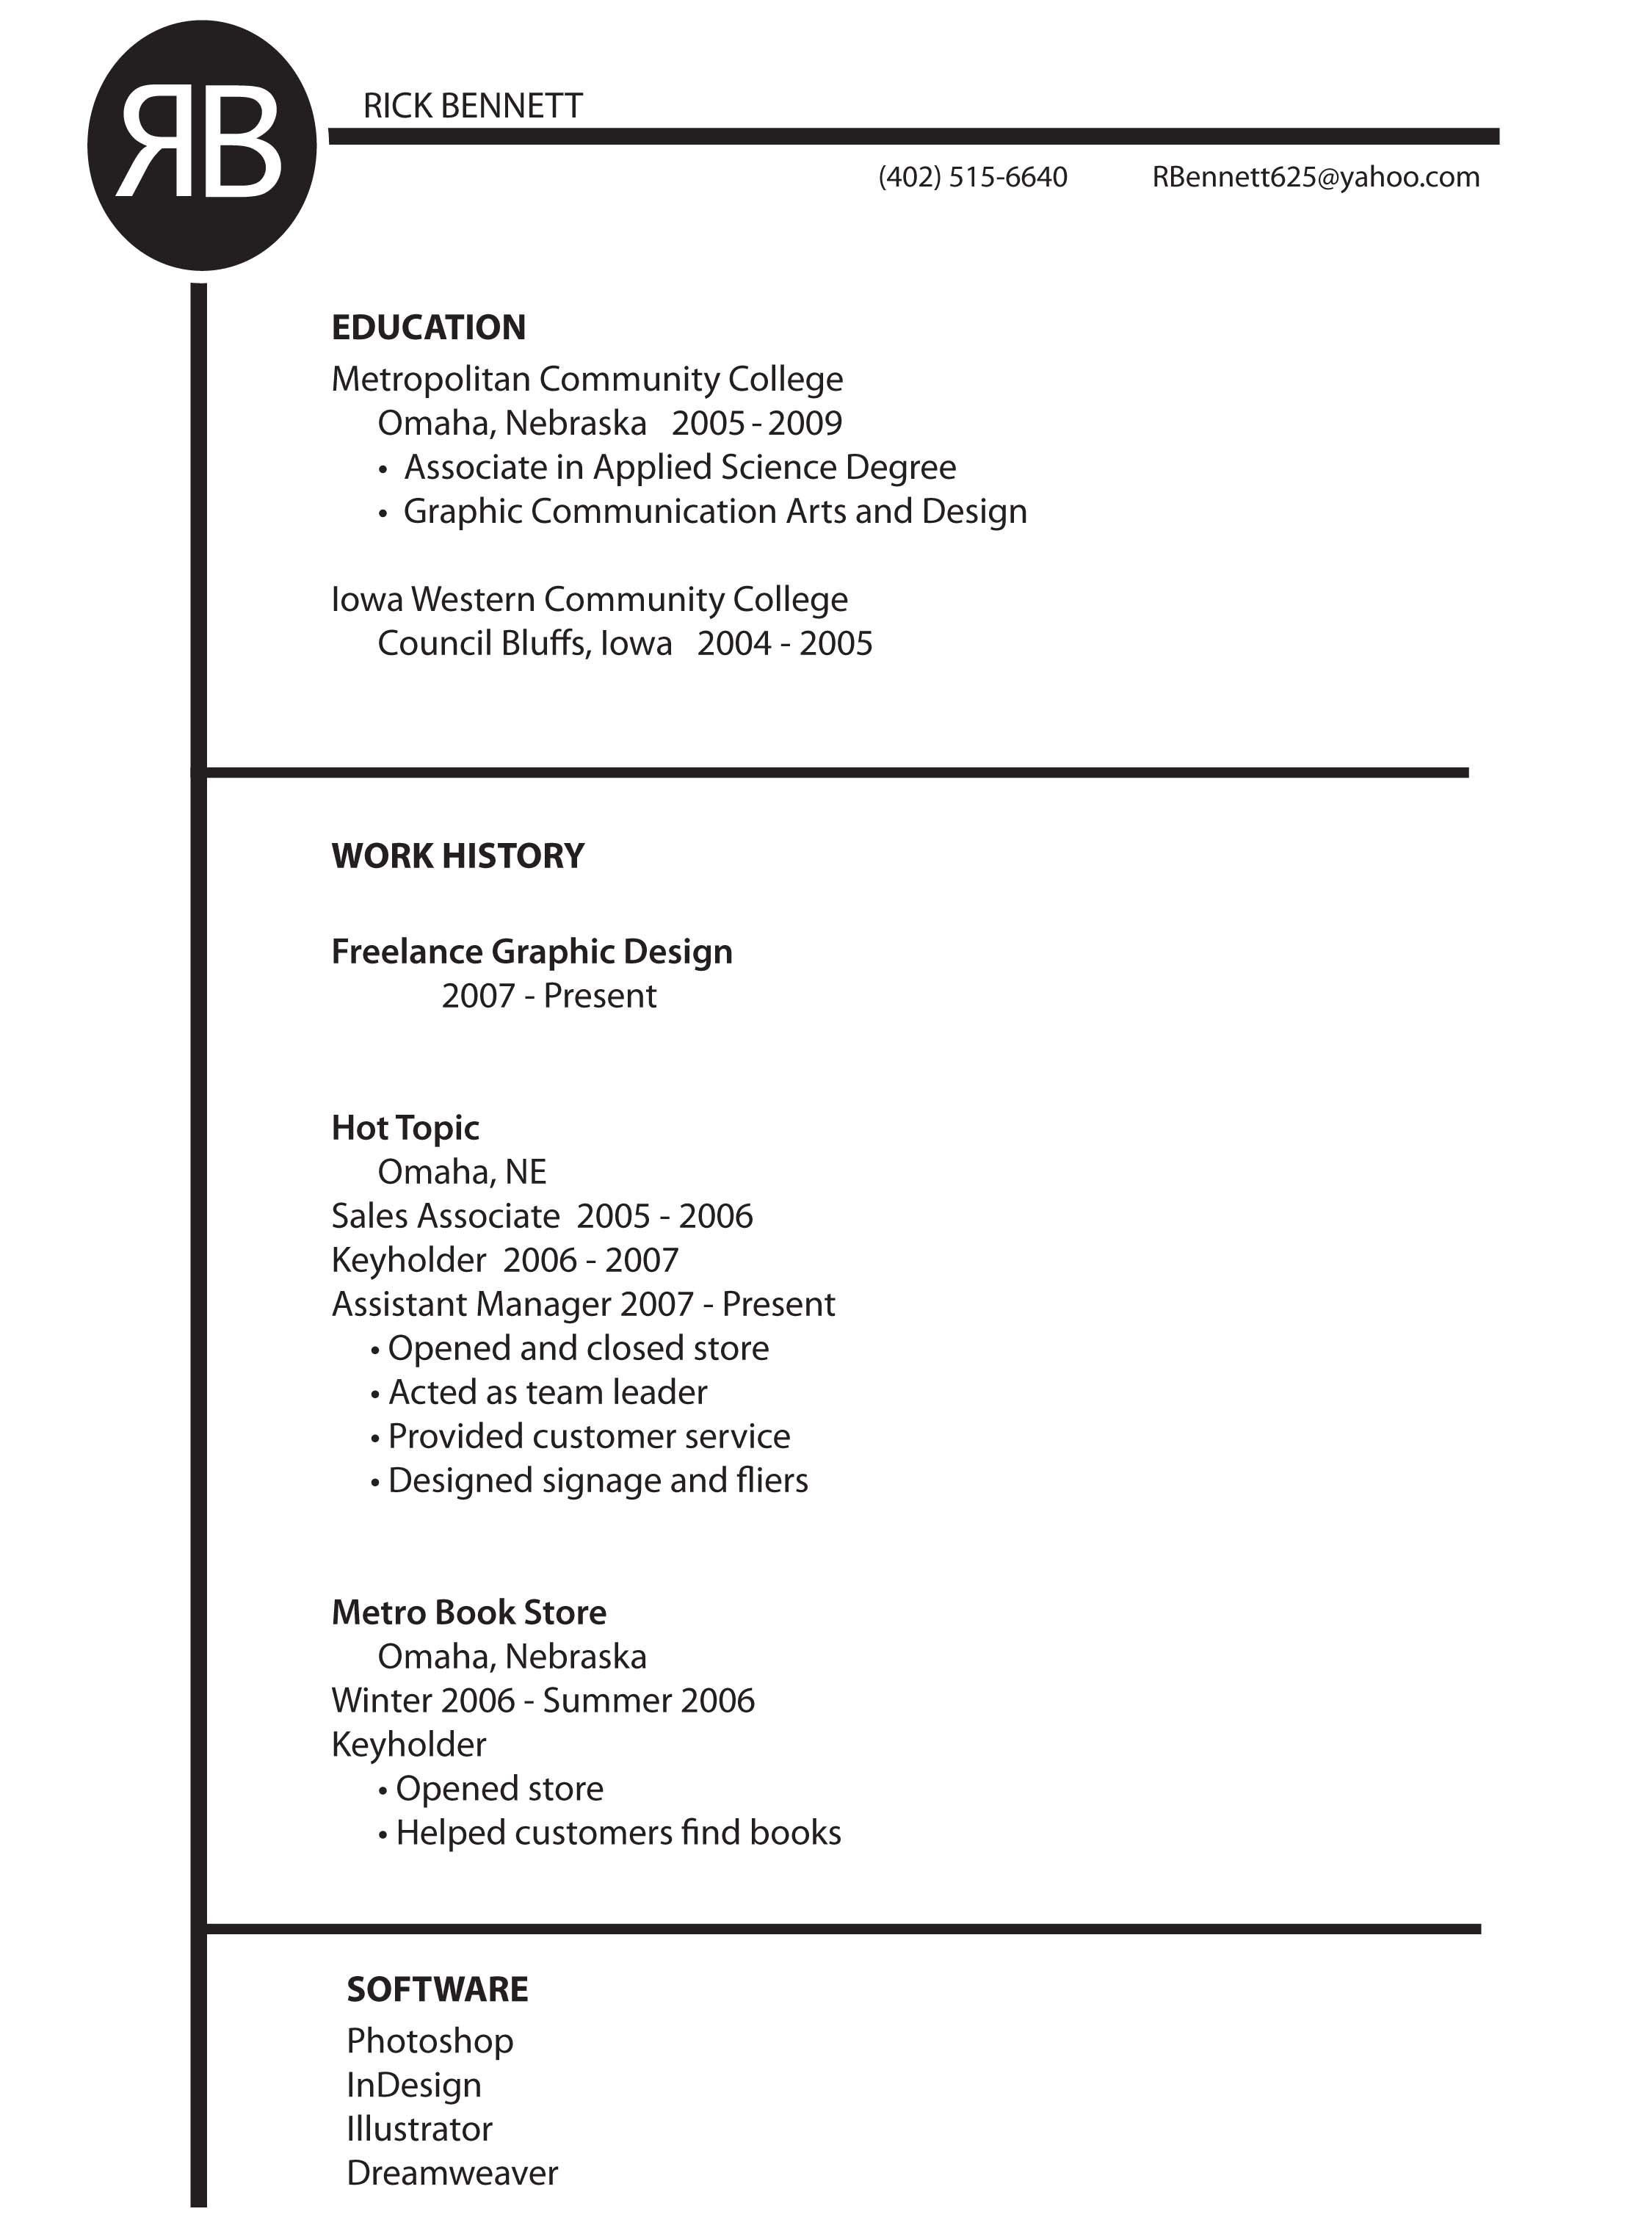 Resume Rabbit - Best Graphic Design Studios Graphic Design Resume Best Fresh 44